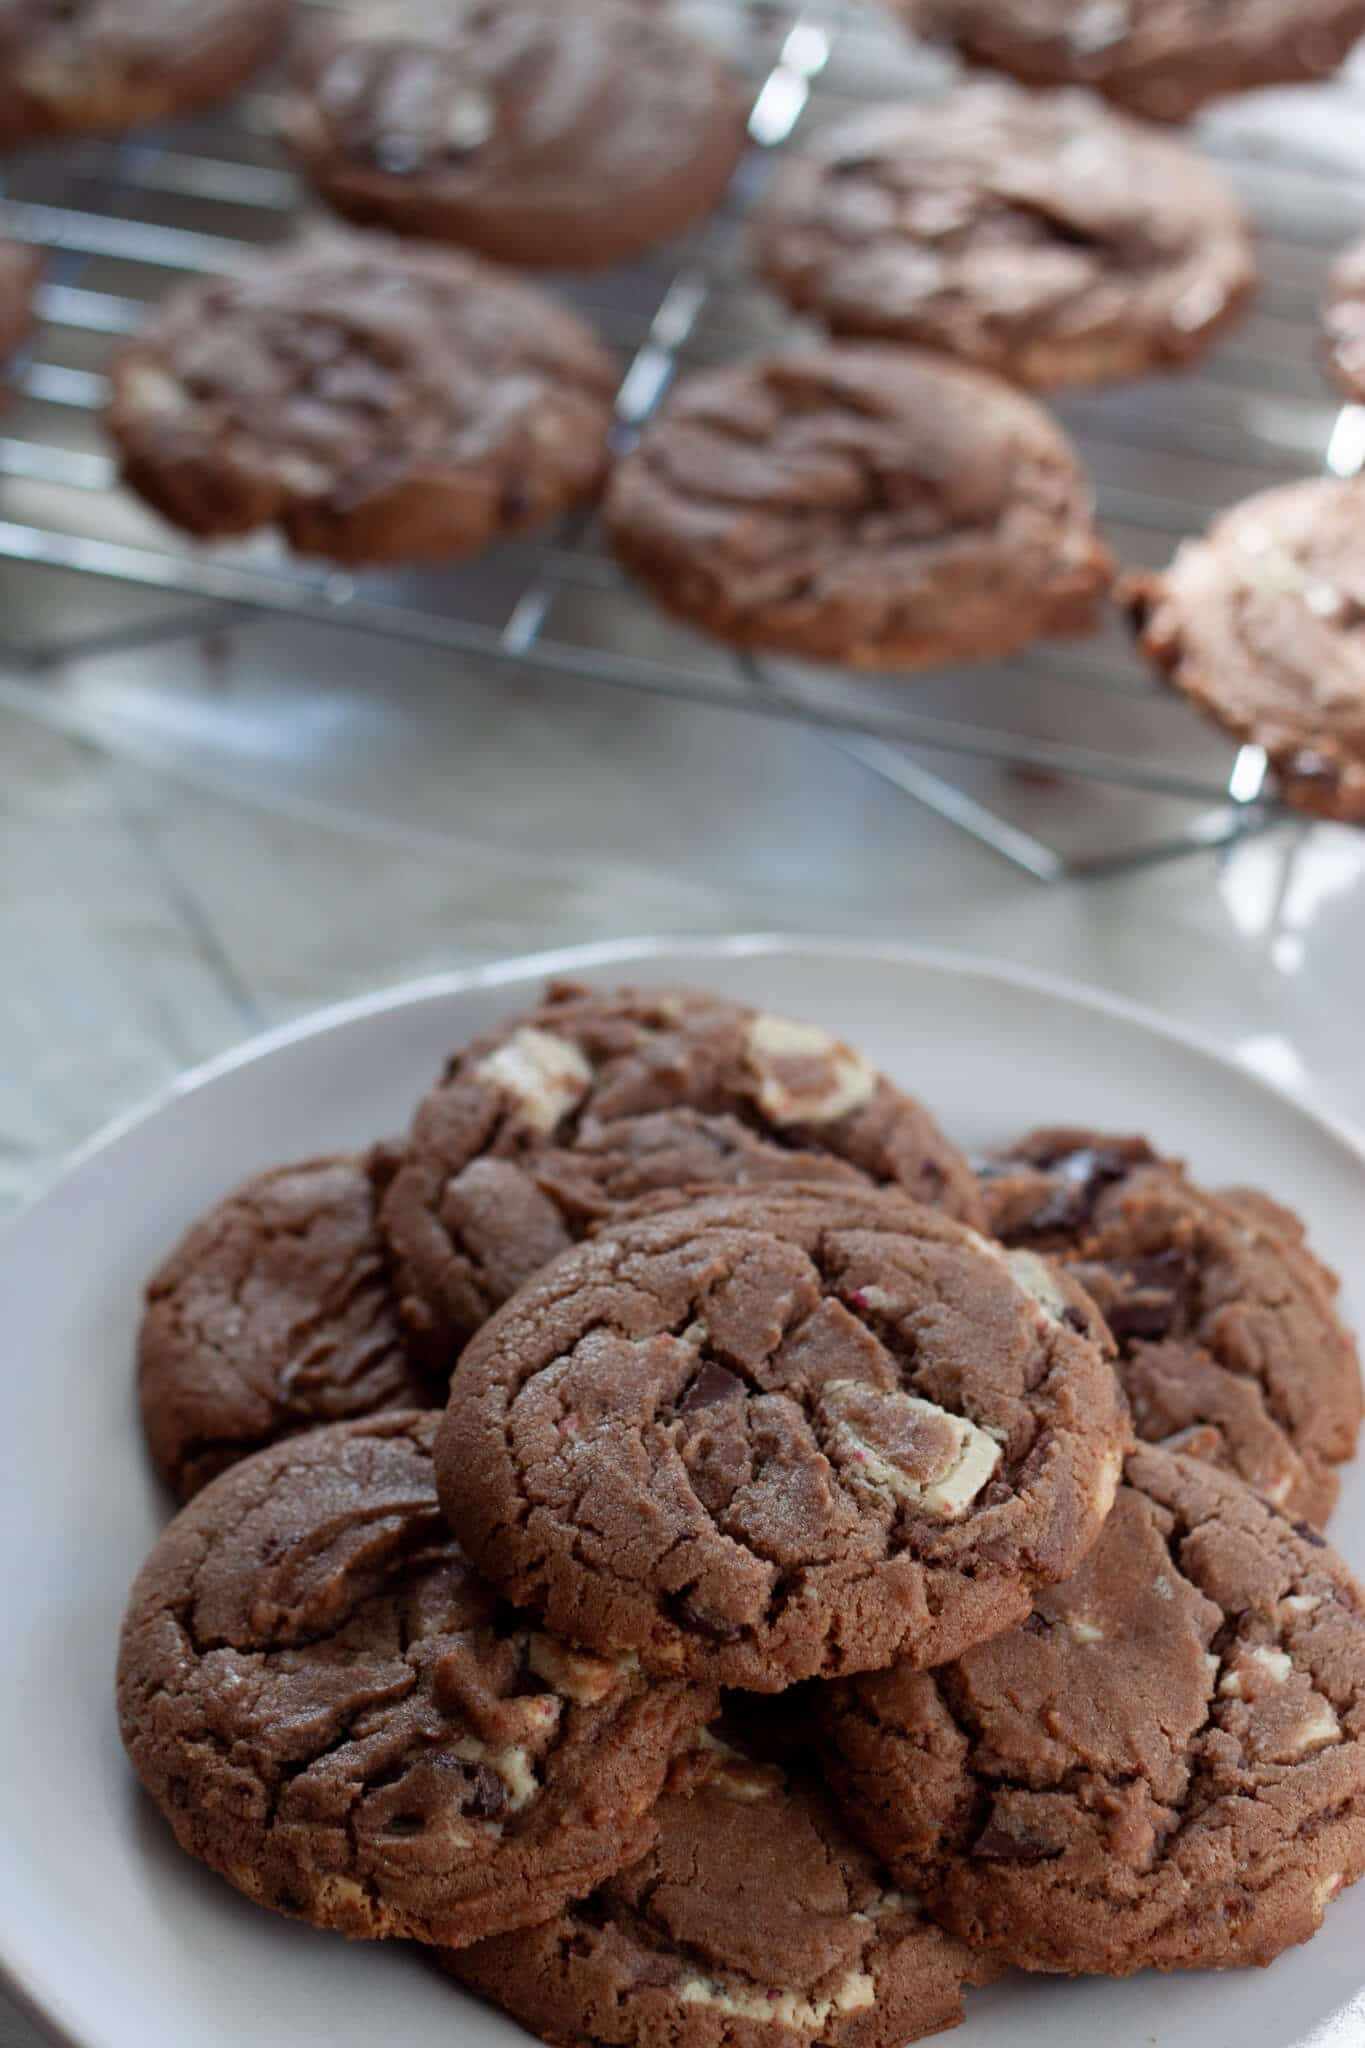 Ghirardelli Hot Chocolate Cookies